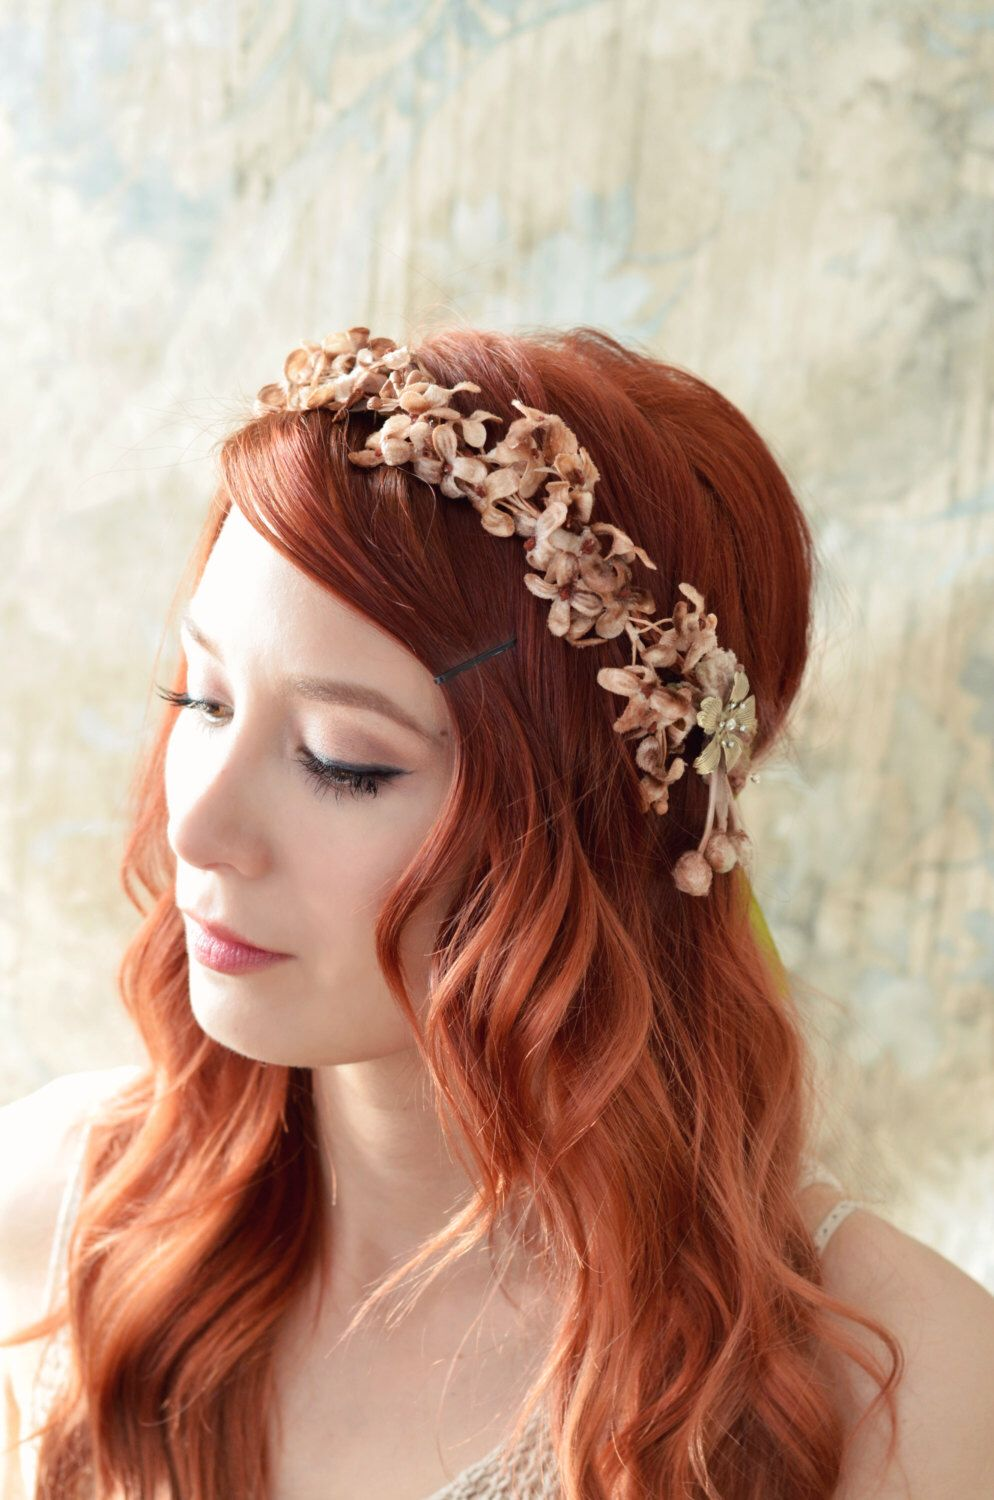 Pin By Amy Carden On Wedding Pinterest Flower Crown Fall Flower